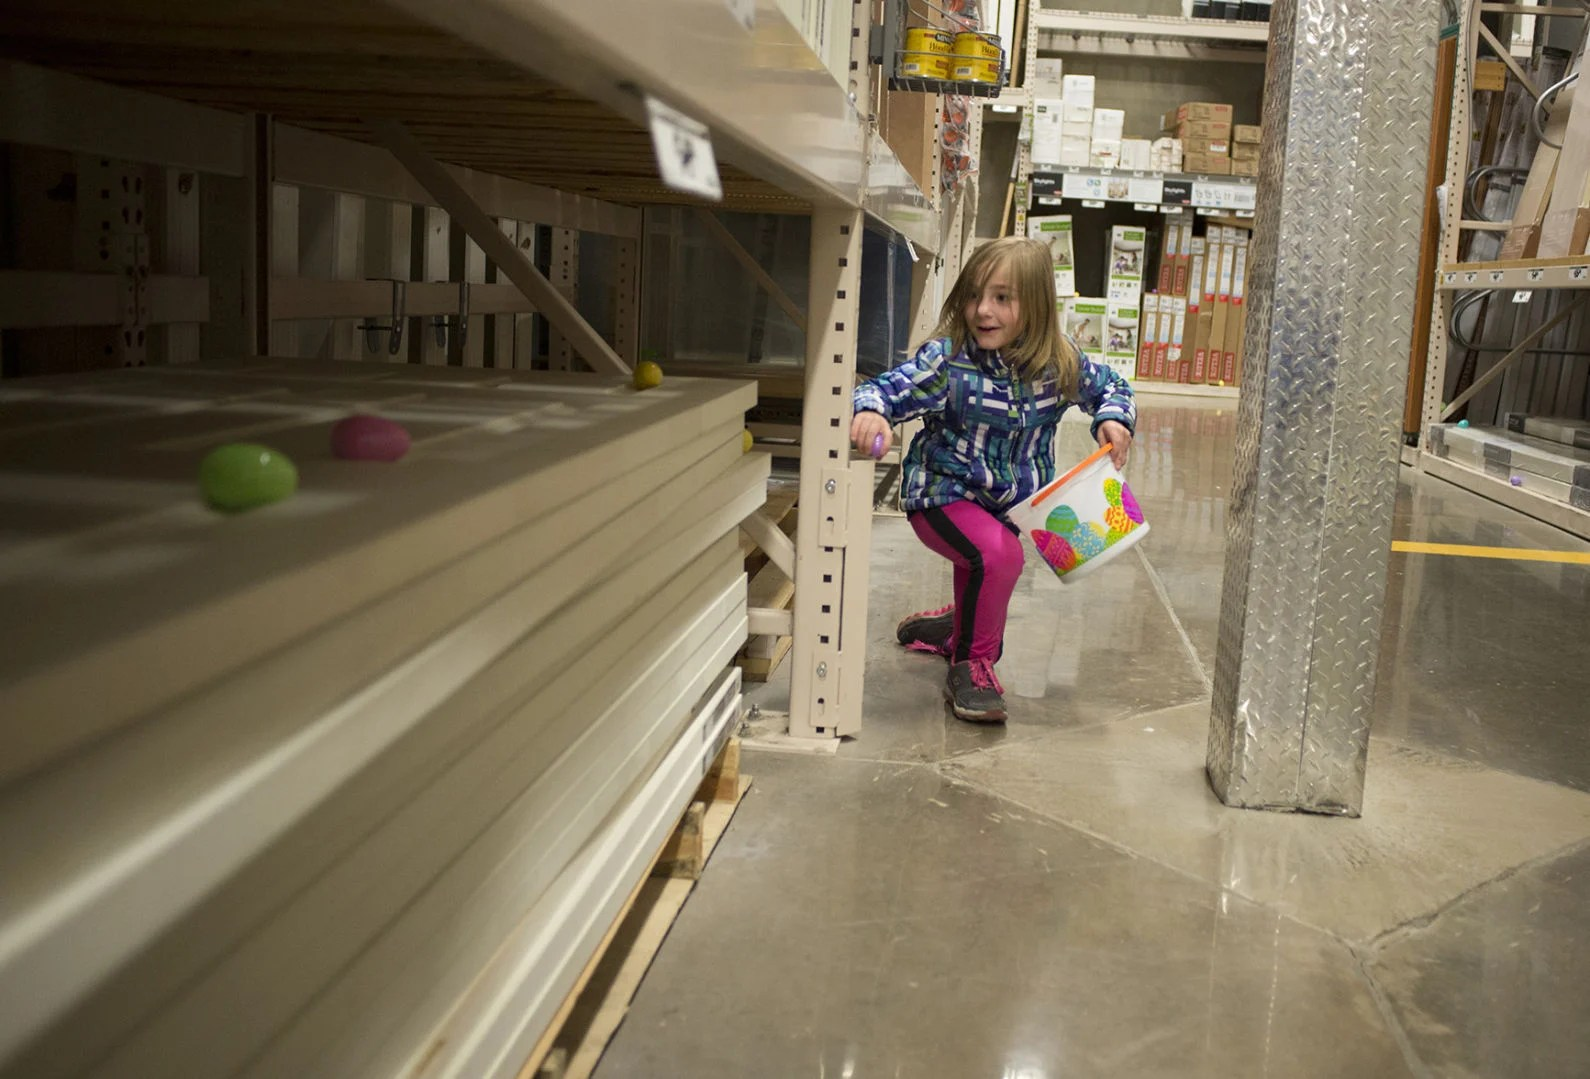 Manly Annual Easter Egg Hunt Hundreds Dash Through Home Depot Hundreds Dash Through Home Depot Annual Easter Egg Hunt Local Home Depot Easter Hours 2017 Home Depot Easter Opening Times curbed Home Depot Easter Hours